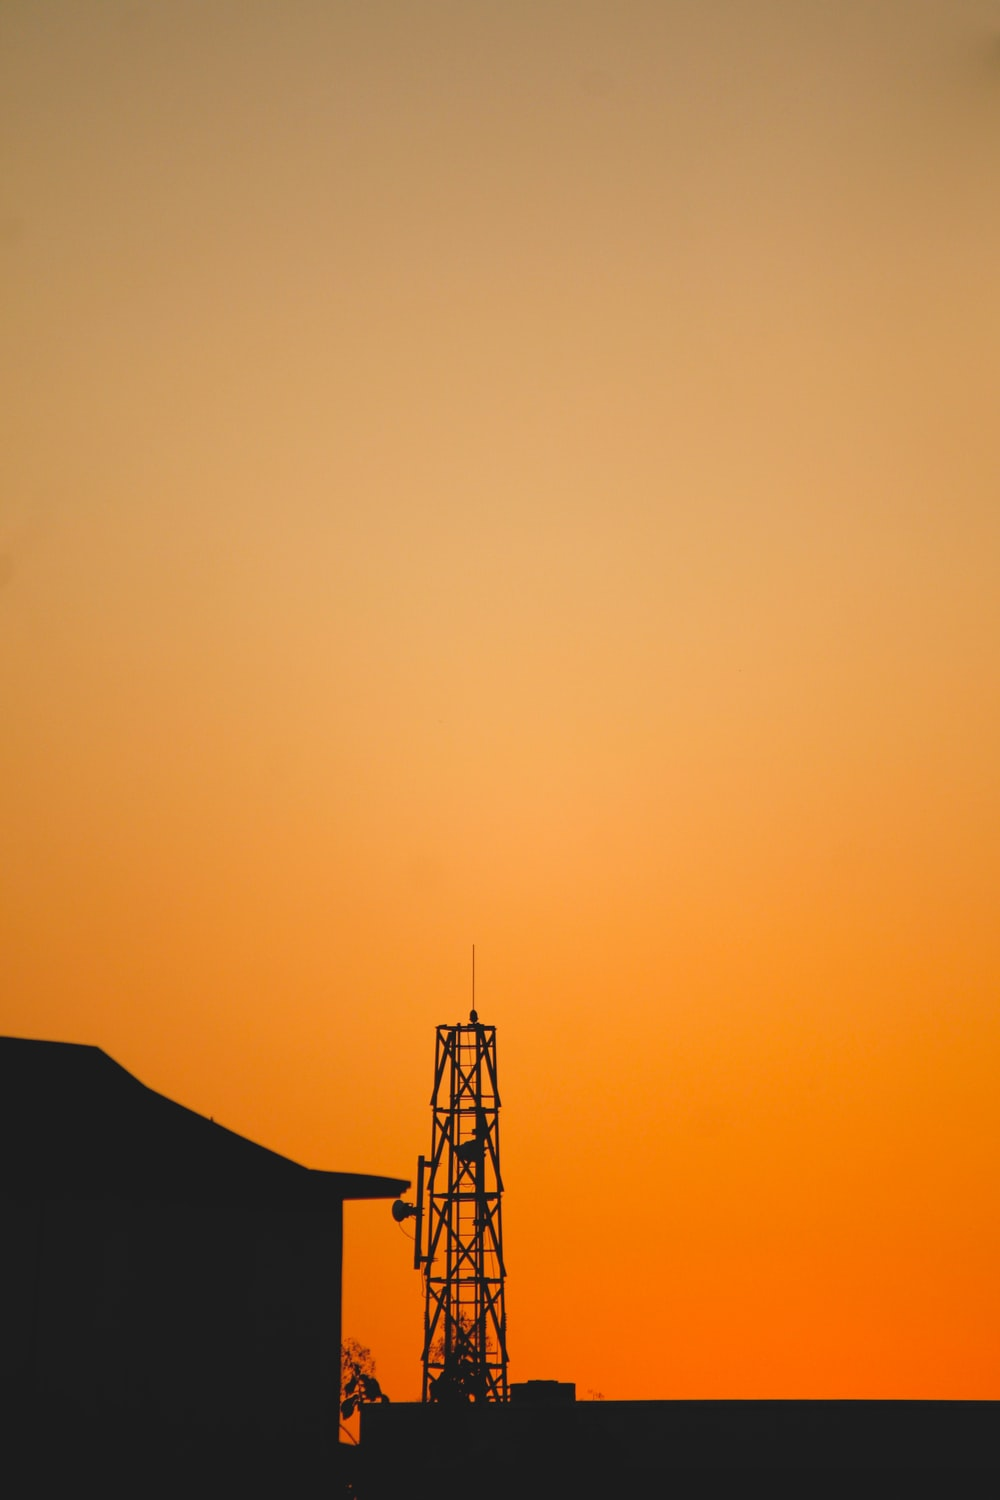 silhouette of tower during sunset